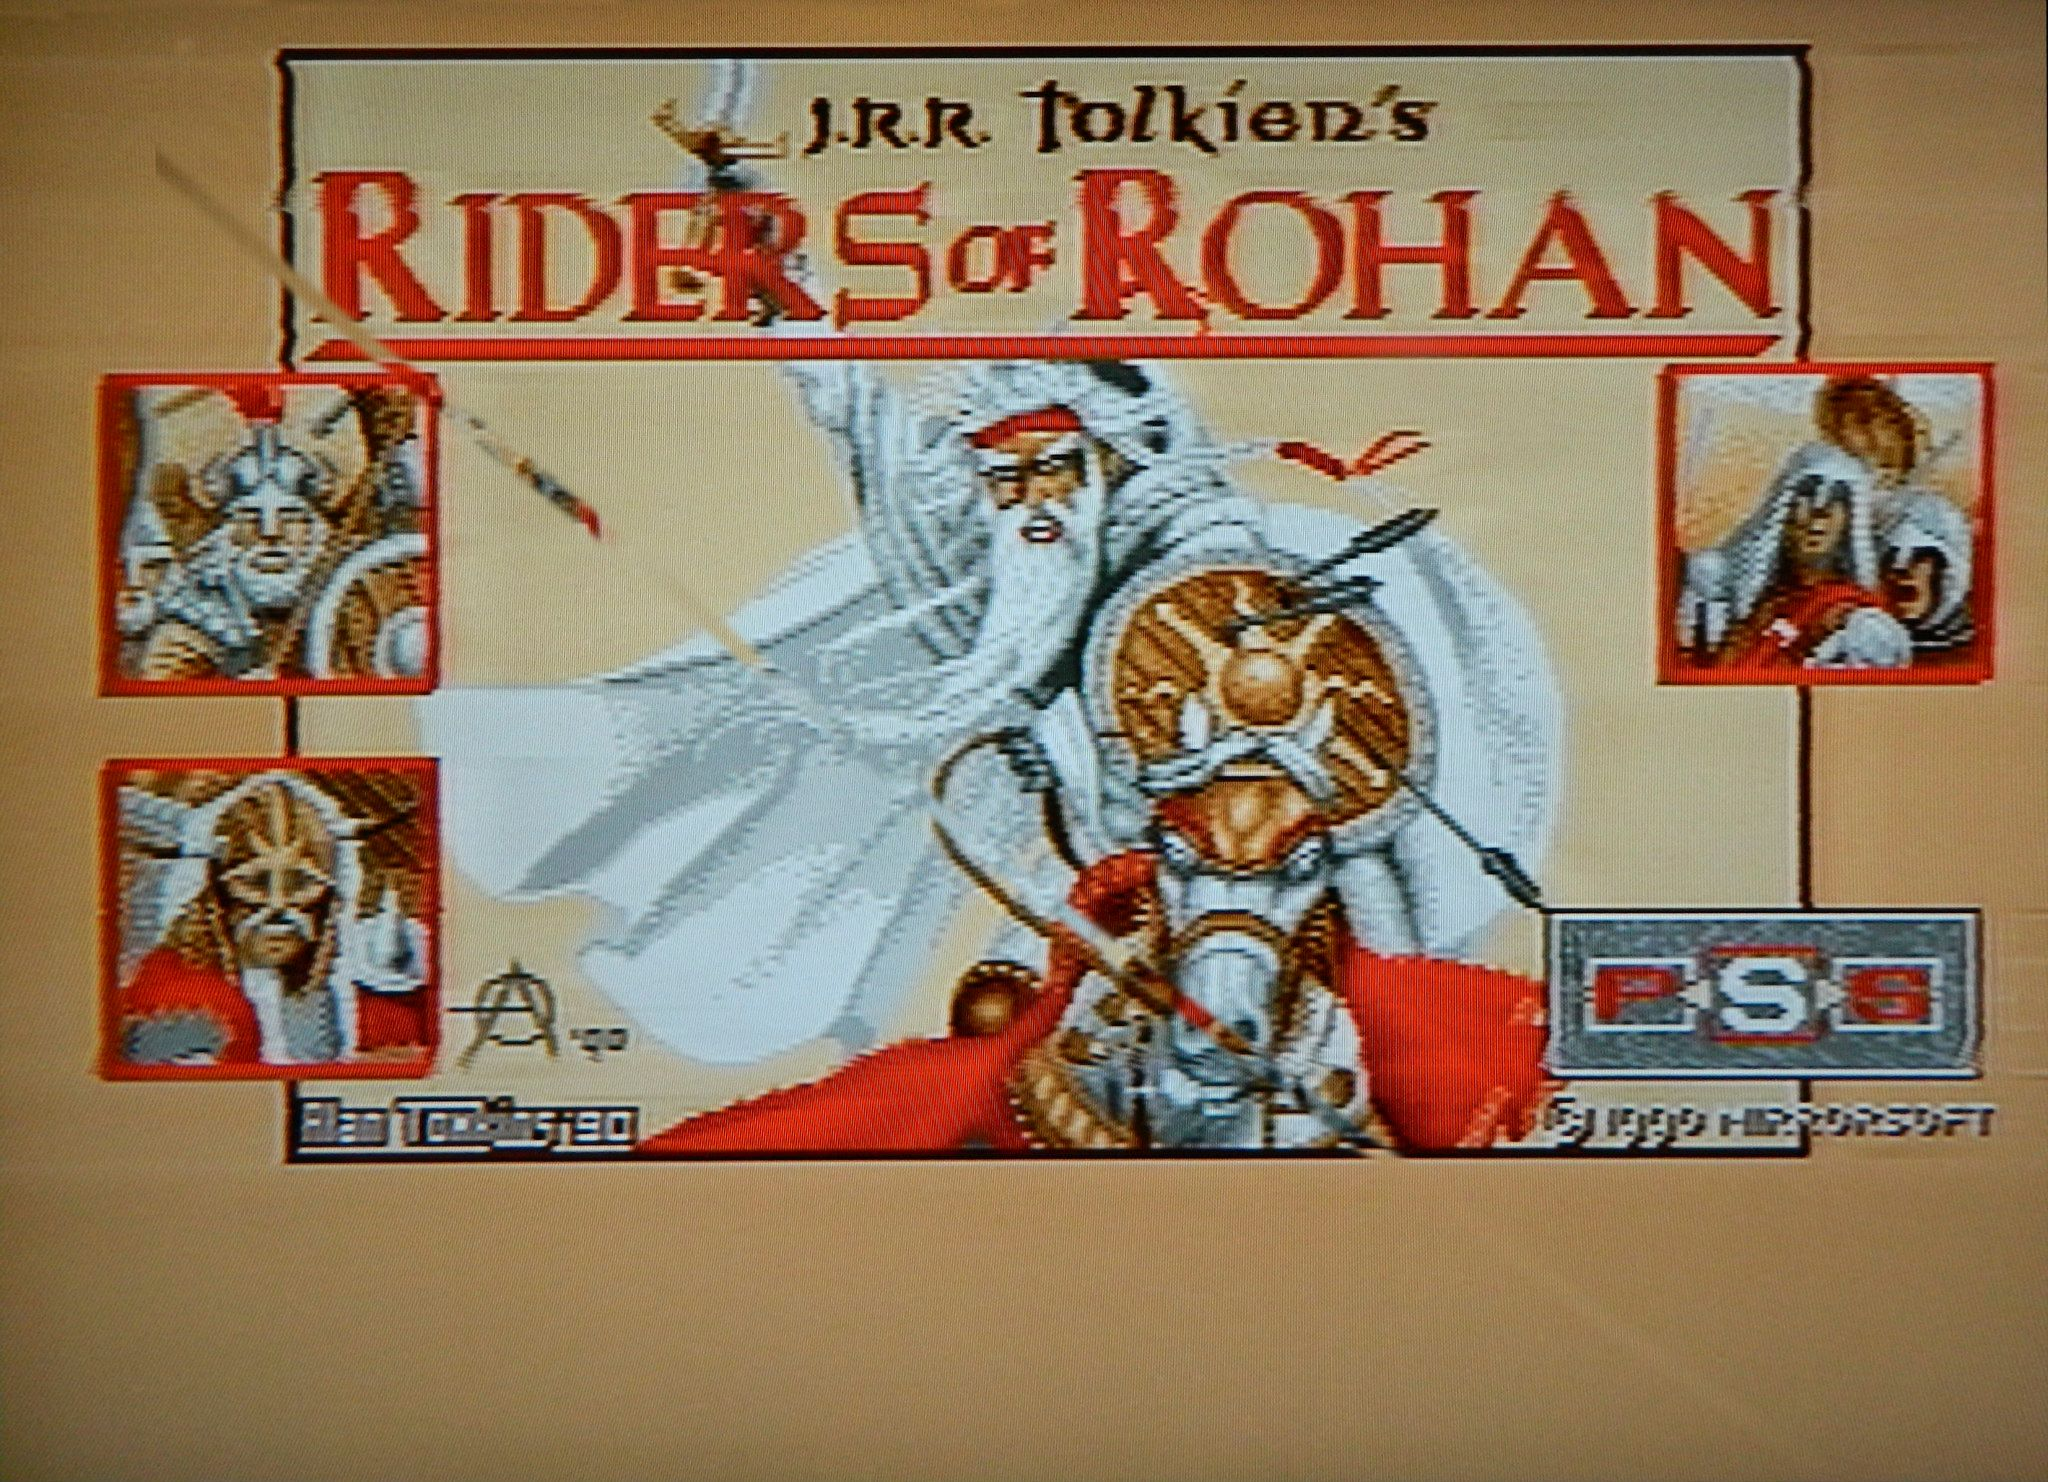 Riders of Rohan was one of the first VGA games Alan did.